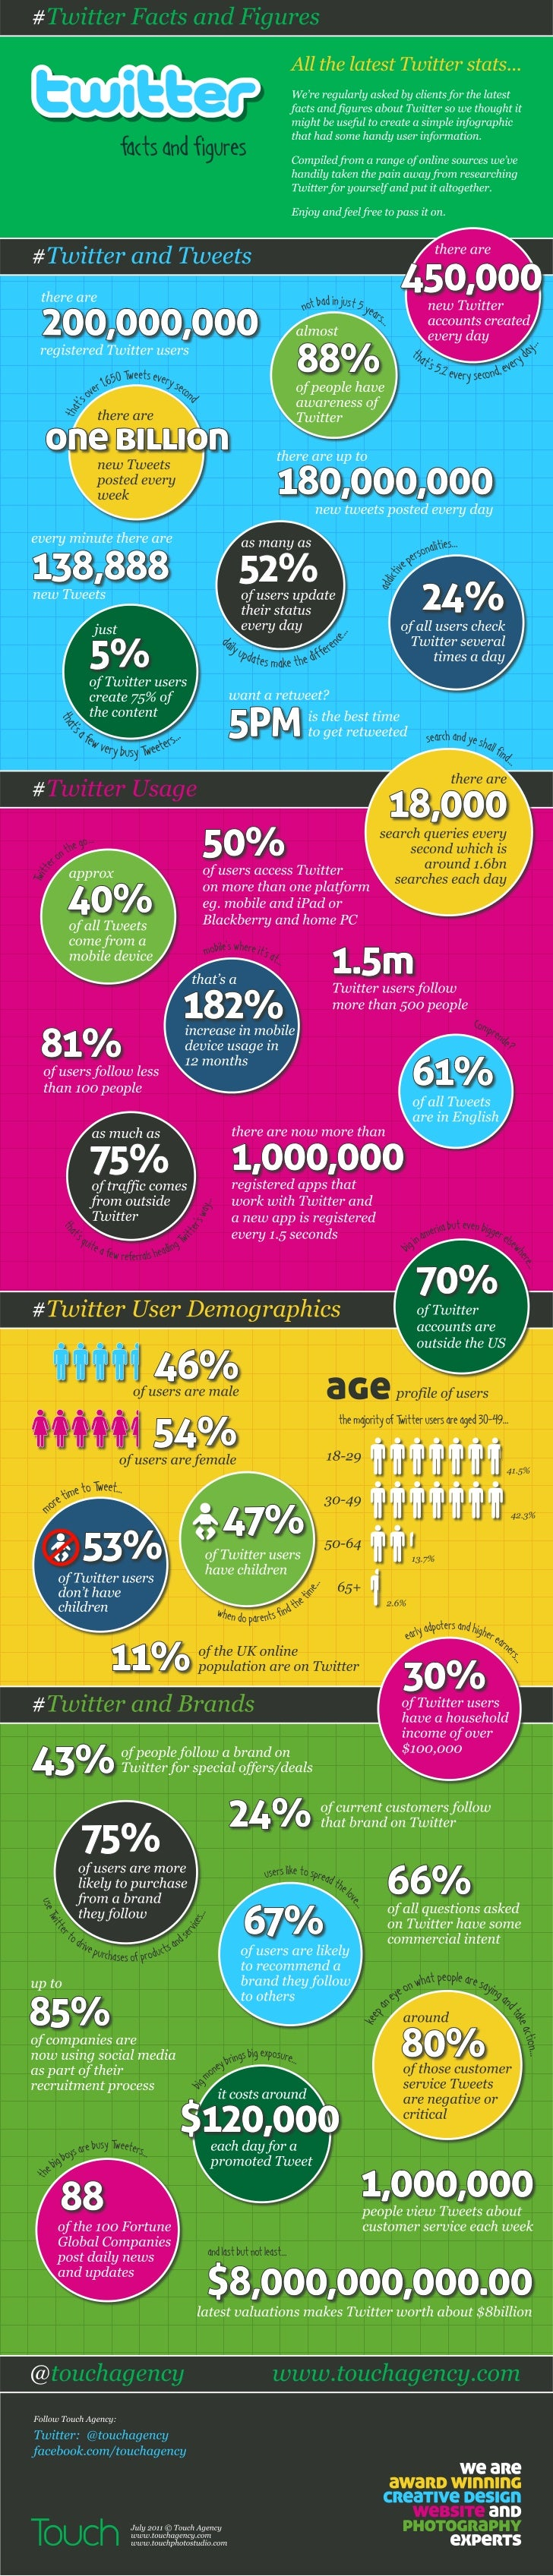 Infografía Twitter Facts and Figures (Touch Agency) - SEP11